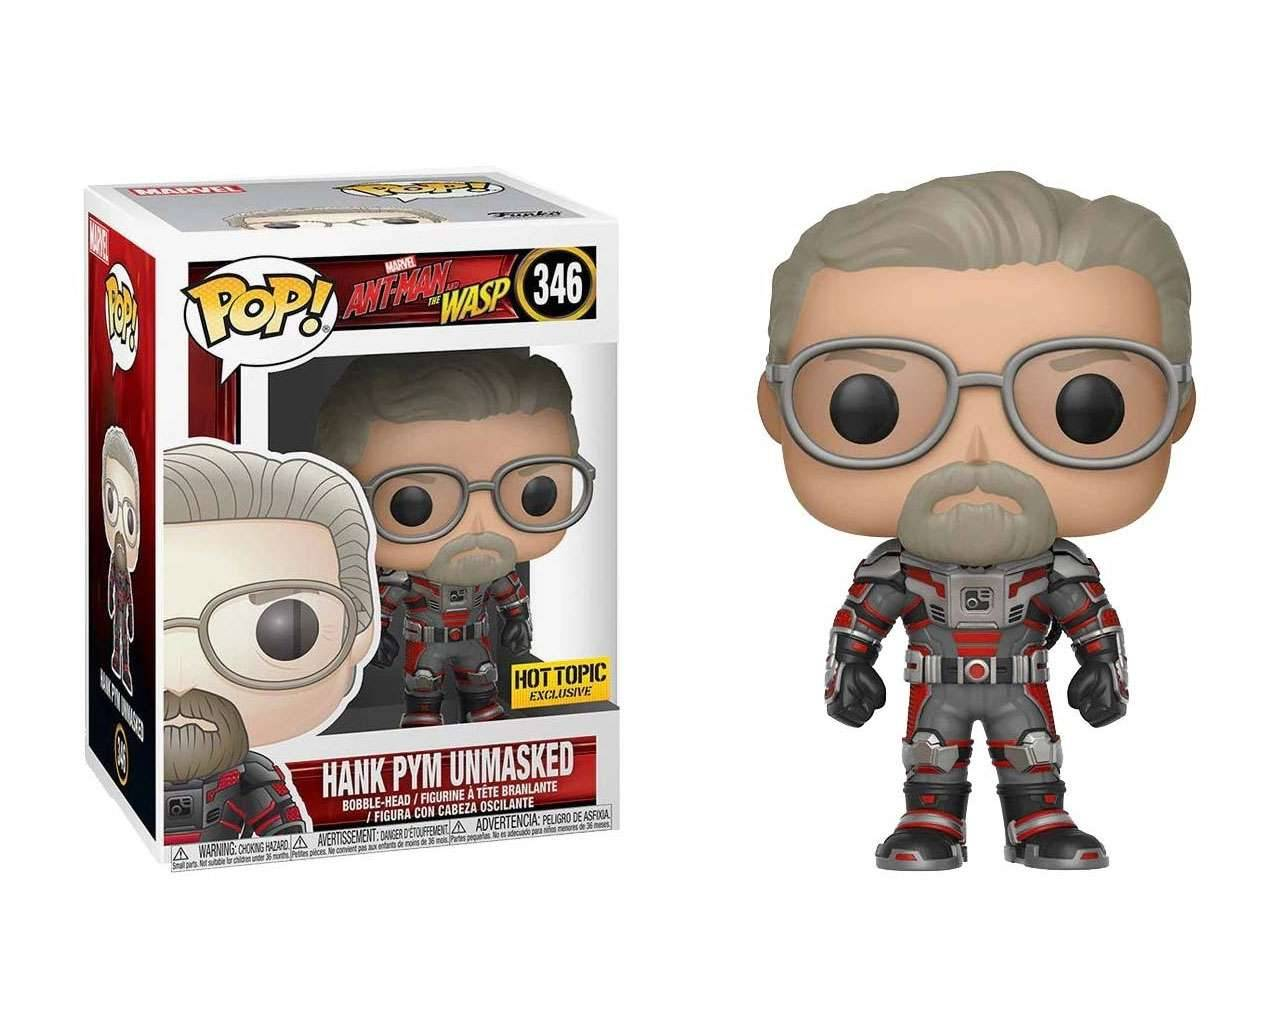 Hank Pym (Unmasked Exclusive) Pop! Vinyl